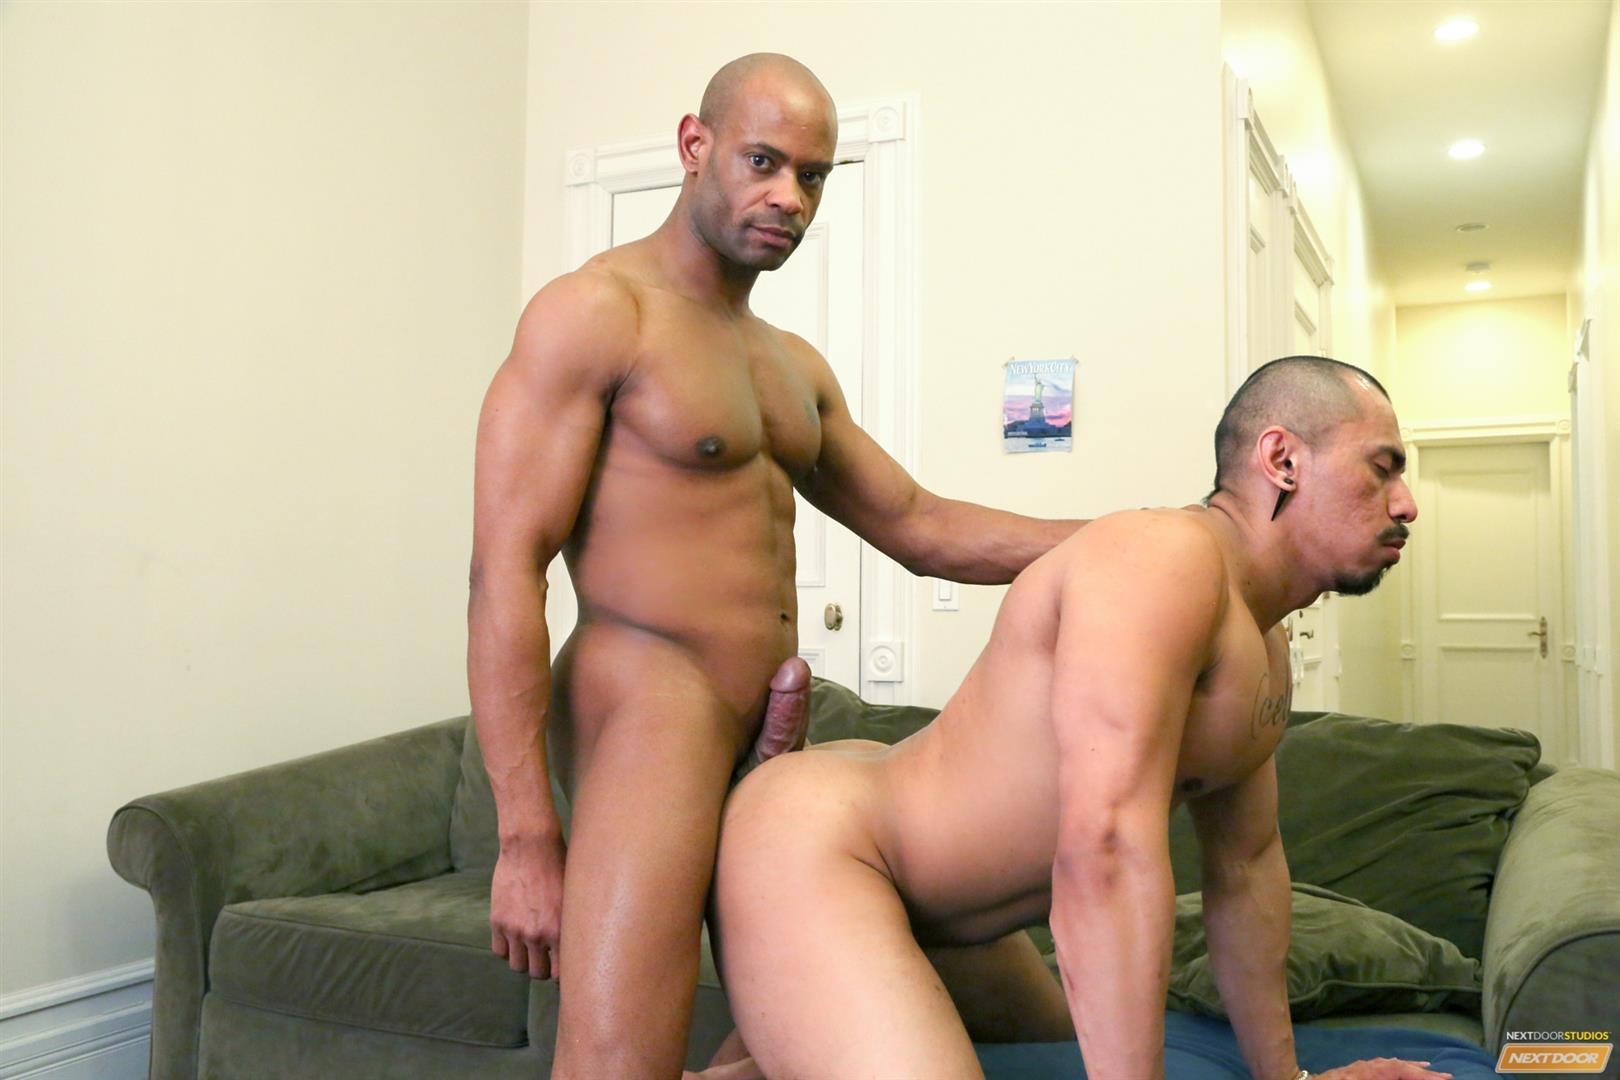 Next Door Ebony Marlone Starr and Romero Santos Big Black Dick Fucking Latino Amateur Gay Porn 13 Marlone Starr Fucks Boyfriend Romero Santos With His Big Black Dick